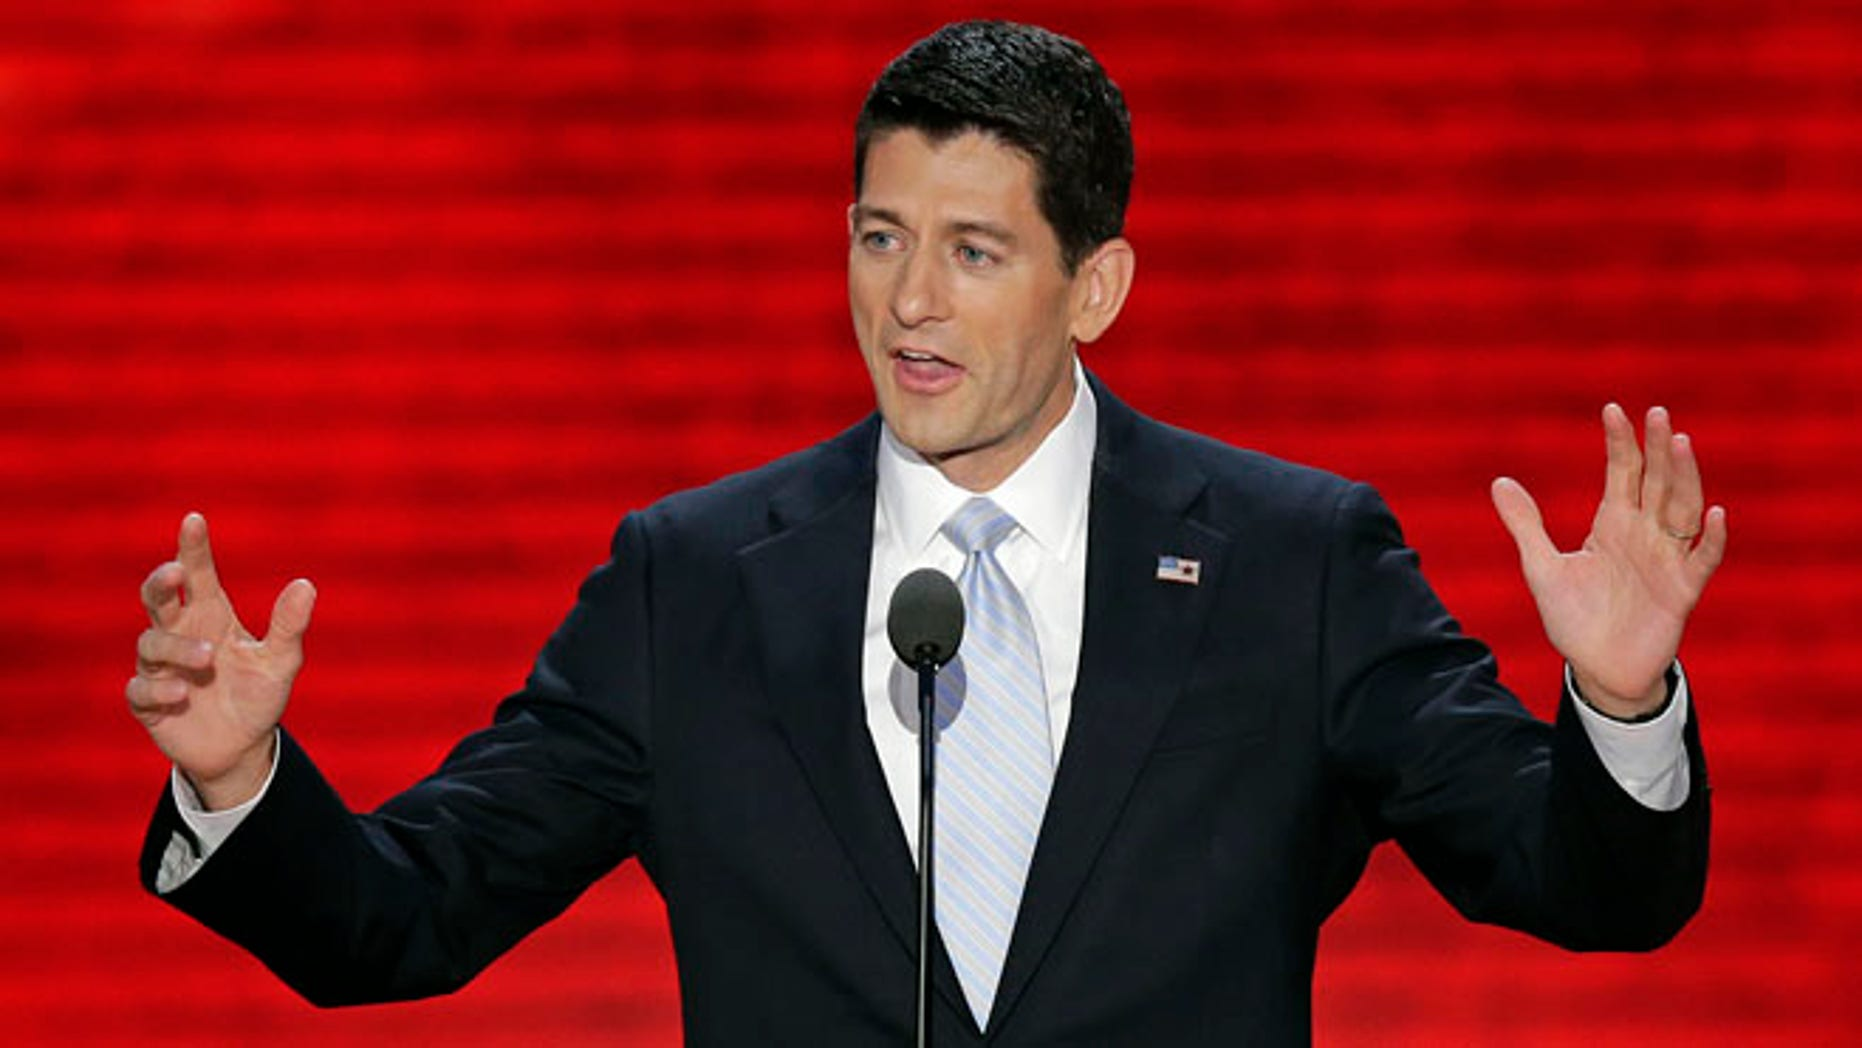 FILE: Aug. 29, 2012: Republican vice presidential nominee Rep. Paul Ryan addresses the Republican National Convention in Tampa, Fla.